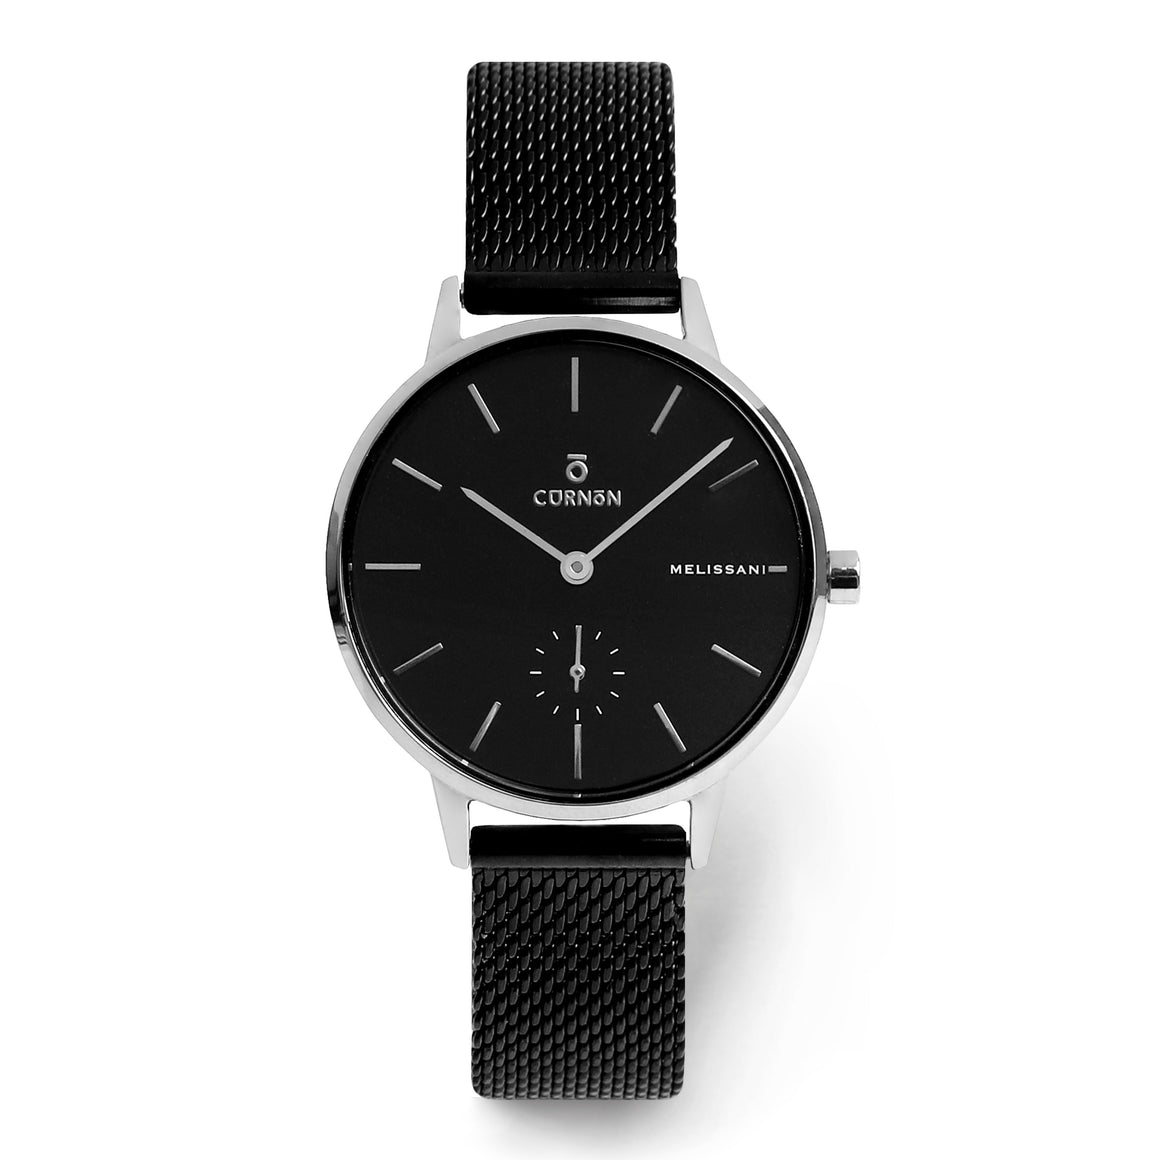 Đồng Hồ Thời Trang Melissani Eclipse - Curnon Watch